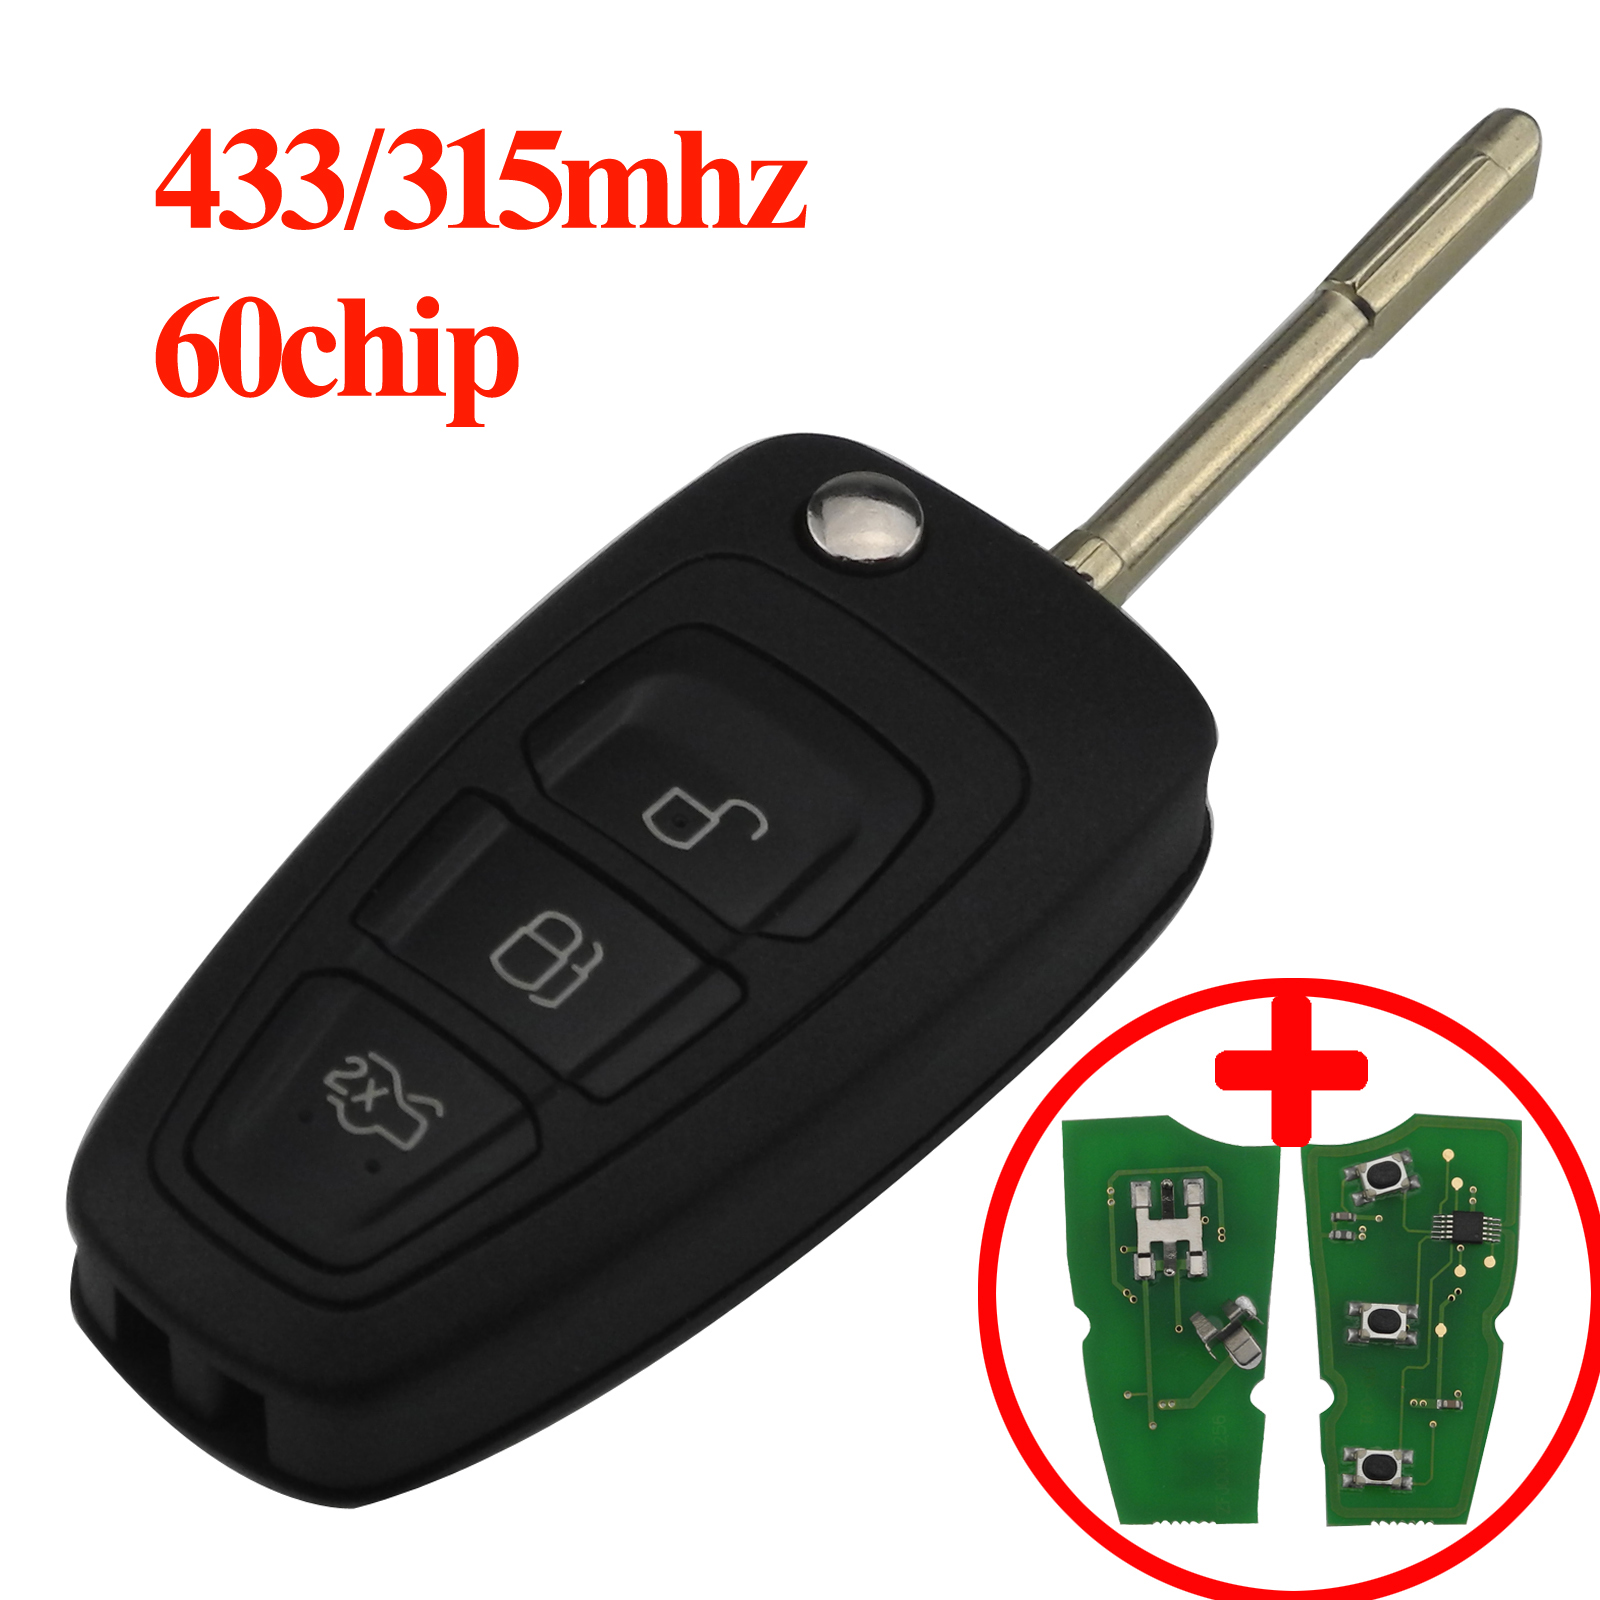 maizhi 433/315Mhz ID60 3 Butoons Floding Flip Car Key for Ford Focus Mondeo 1999 2000 2001 2002 20003 20004 20005 2006 2007